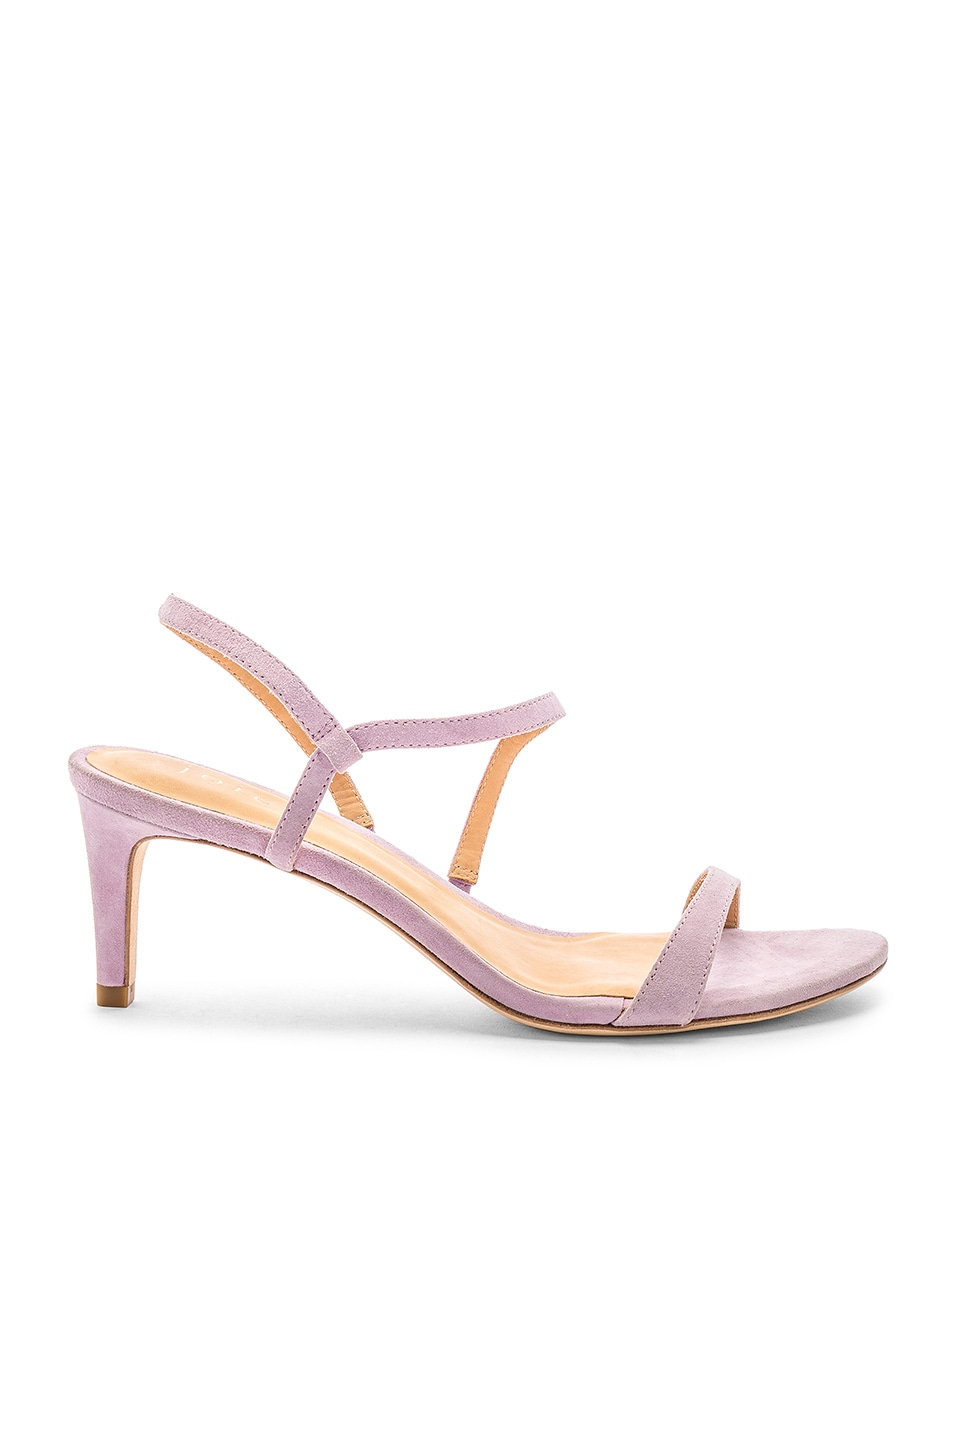 Joie Madi Heel in Lilac